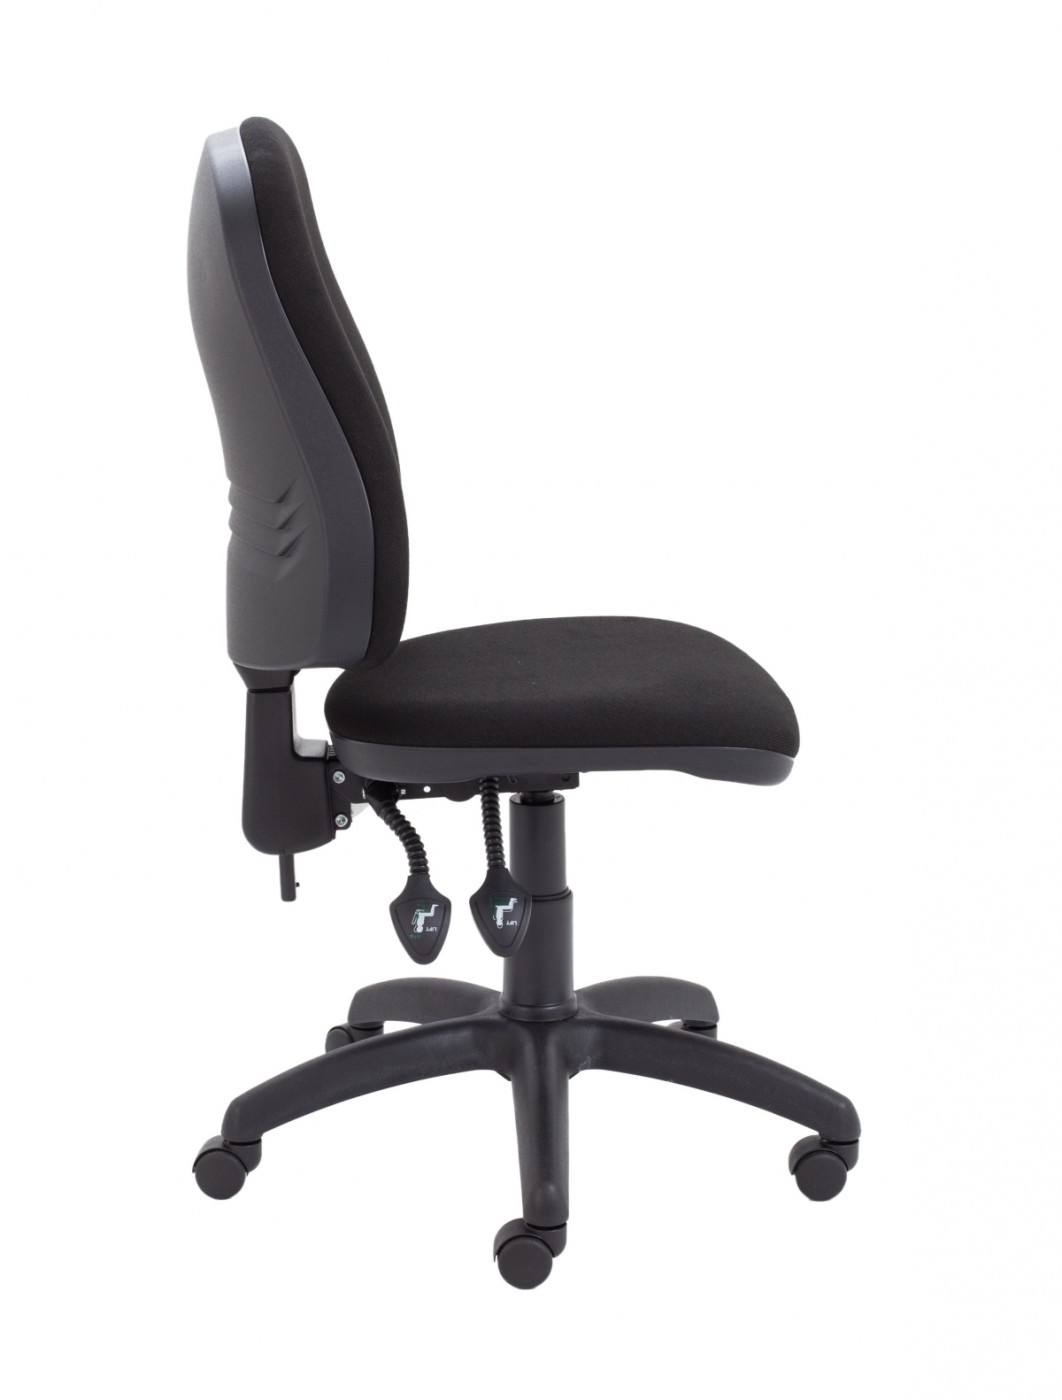 comfort office chair. Office Chairs - Calypso 2 Operator Chair CH2800BLK LITE018 Enlarged View Comfort